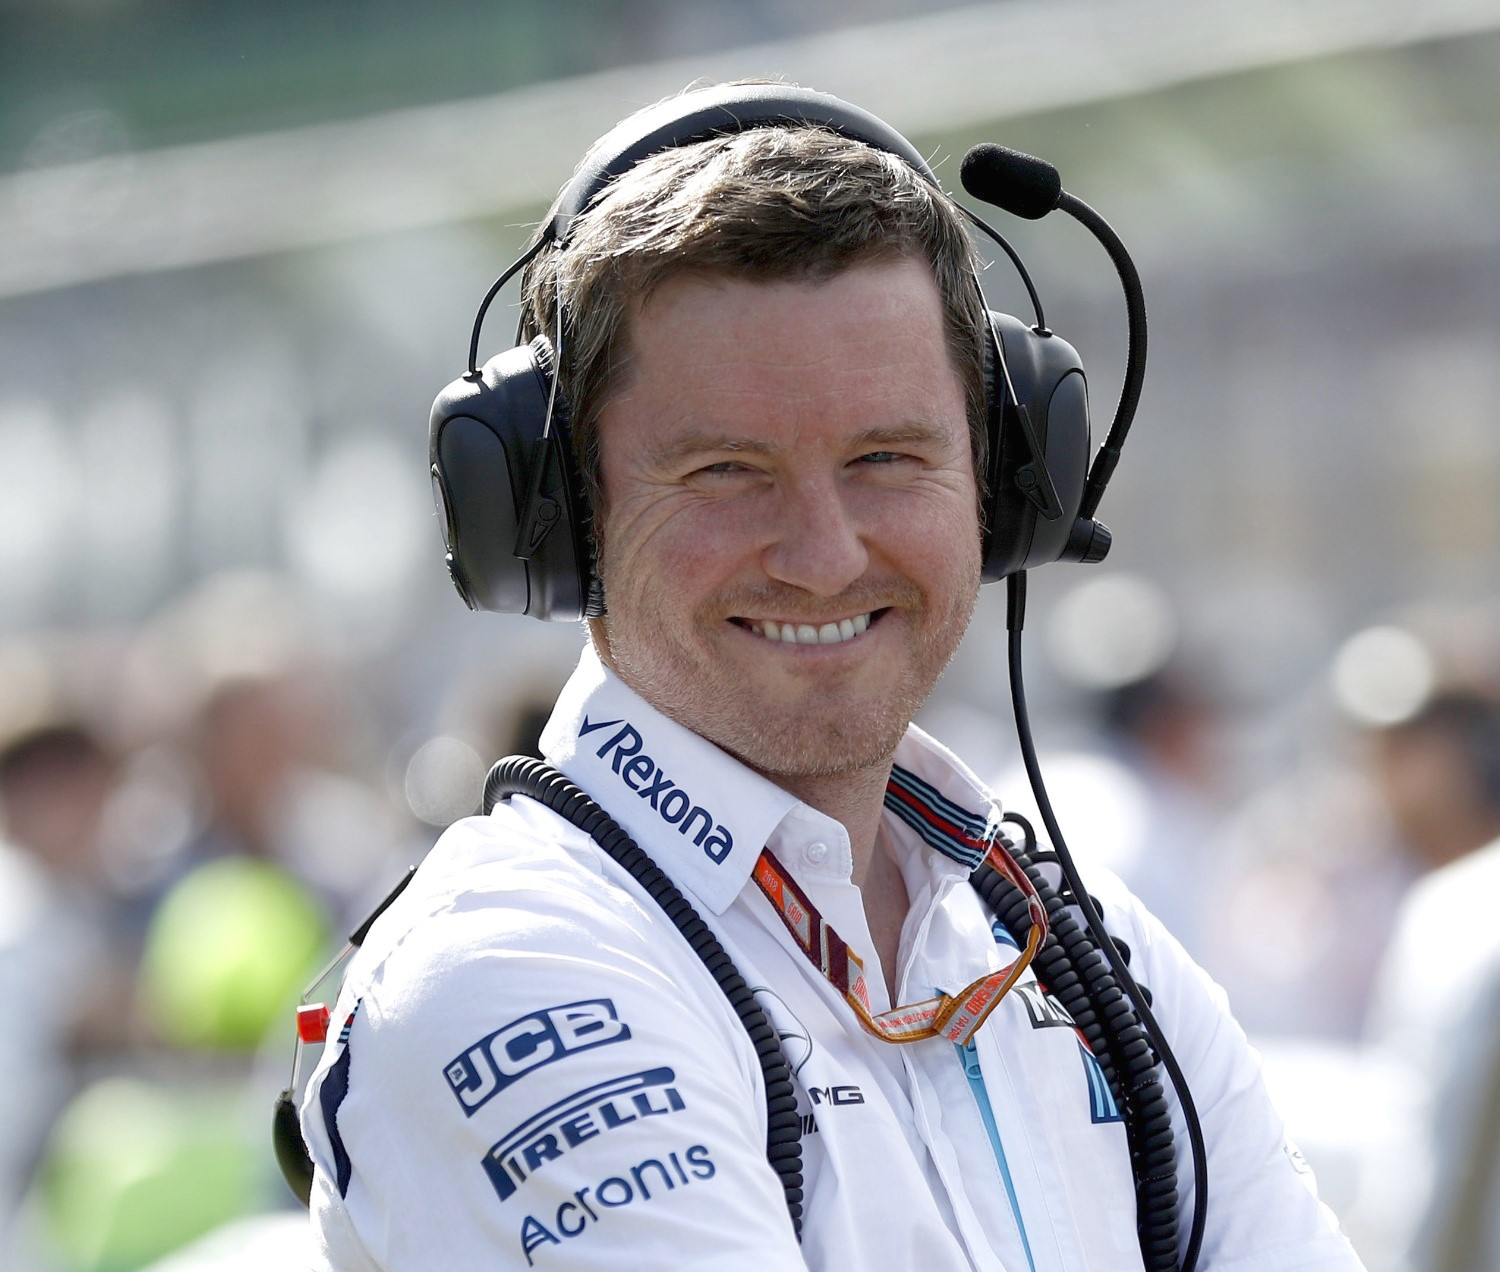 Rob Smedley ousted